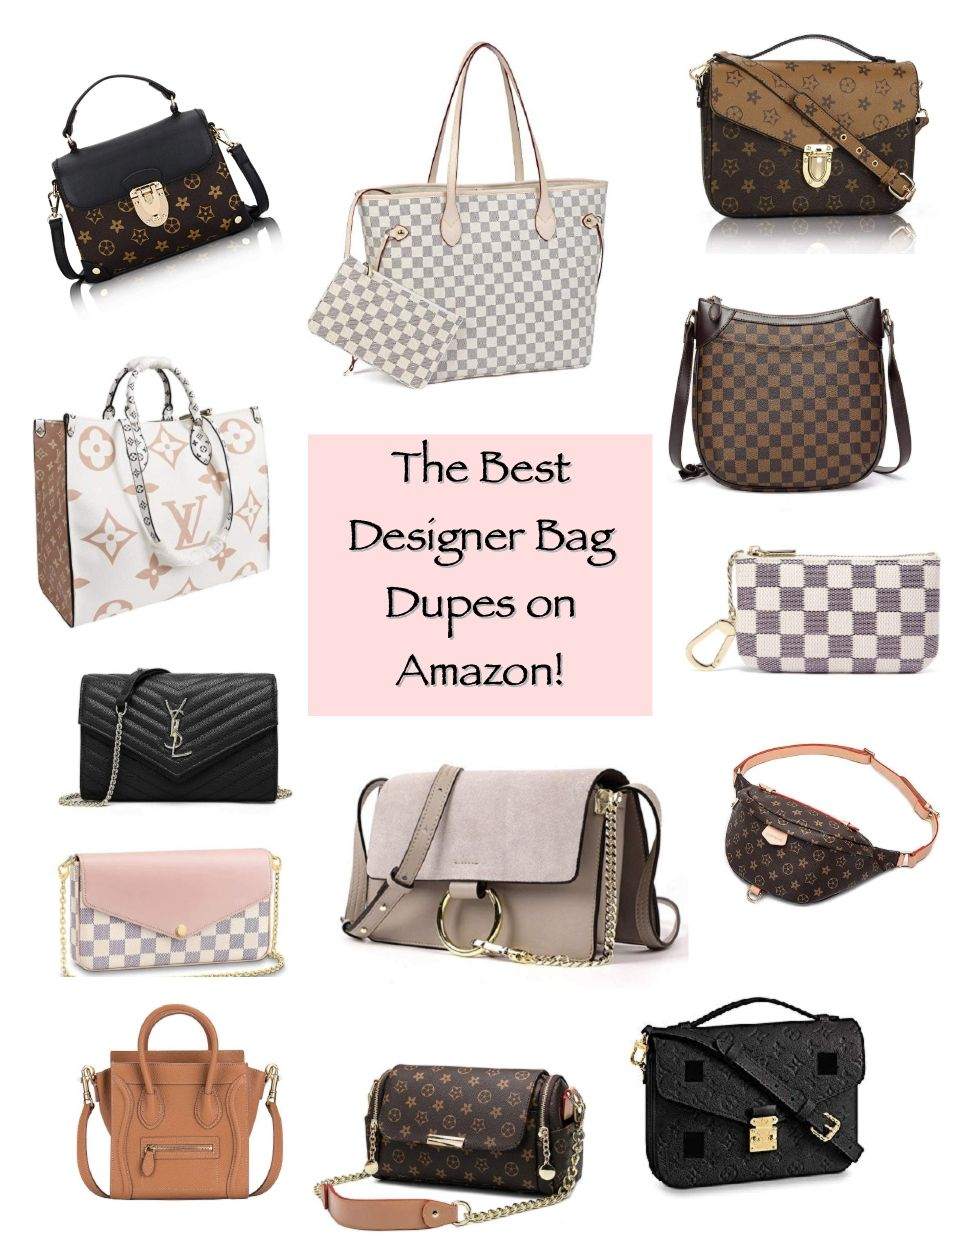 The Best Designer Inspired Bags On Amazon Pt 2 Wishes Reality Best Designer Bags Bags Designer Bags